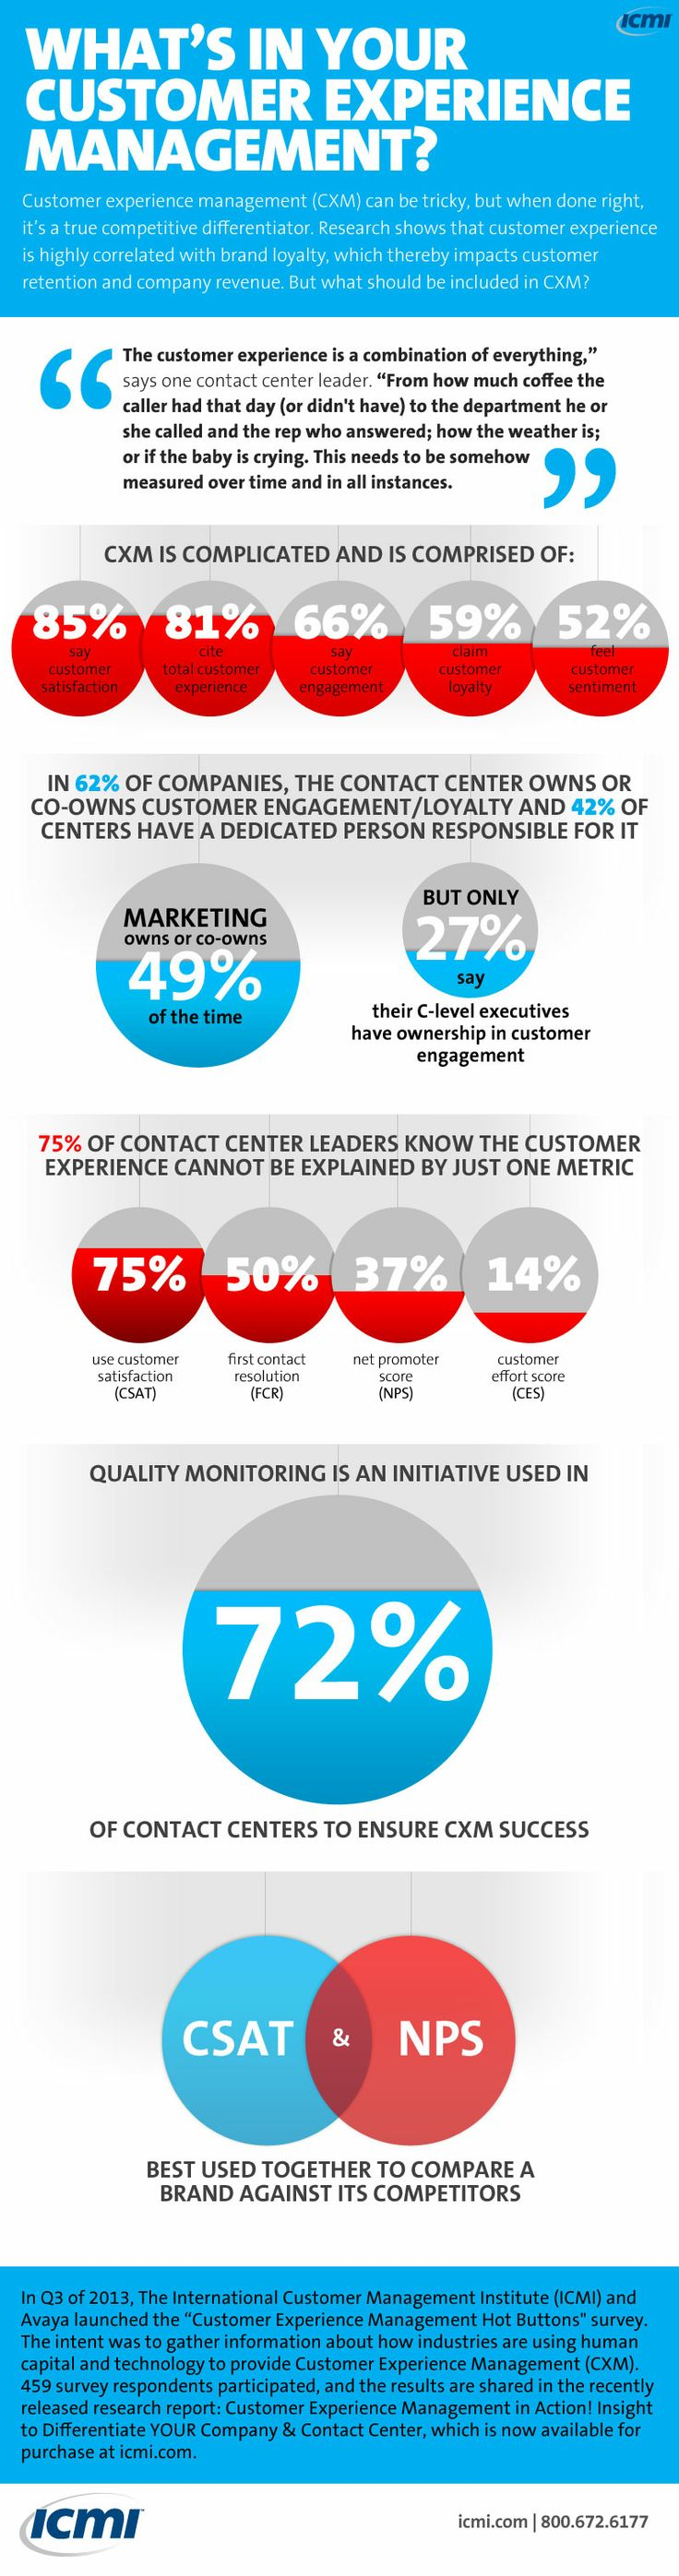 What's in your customer experience management (CXM)? What should be included?